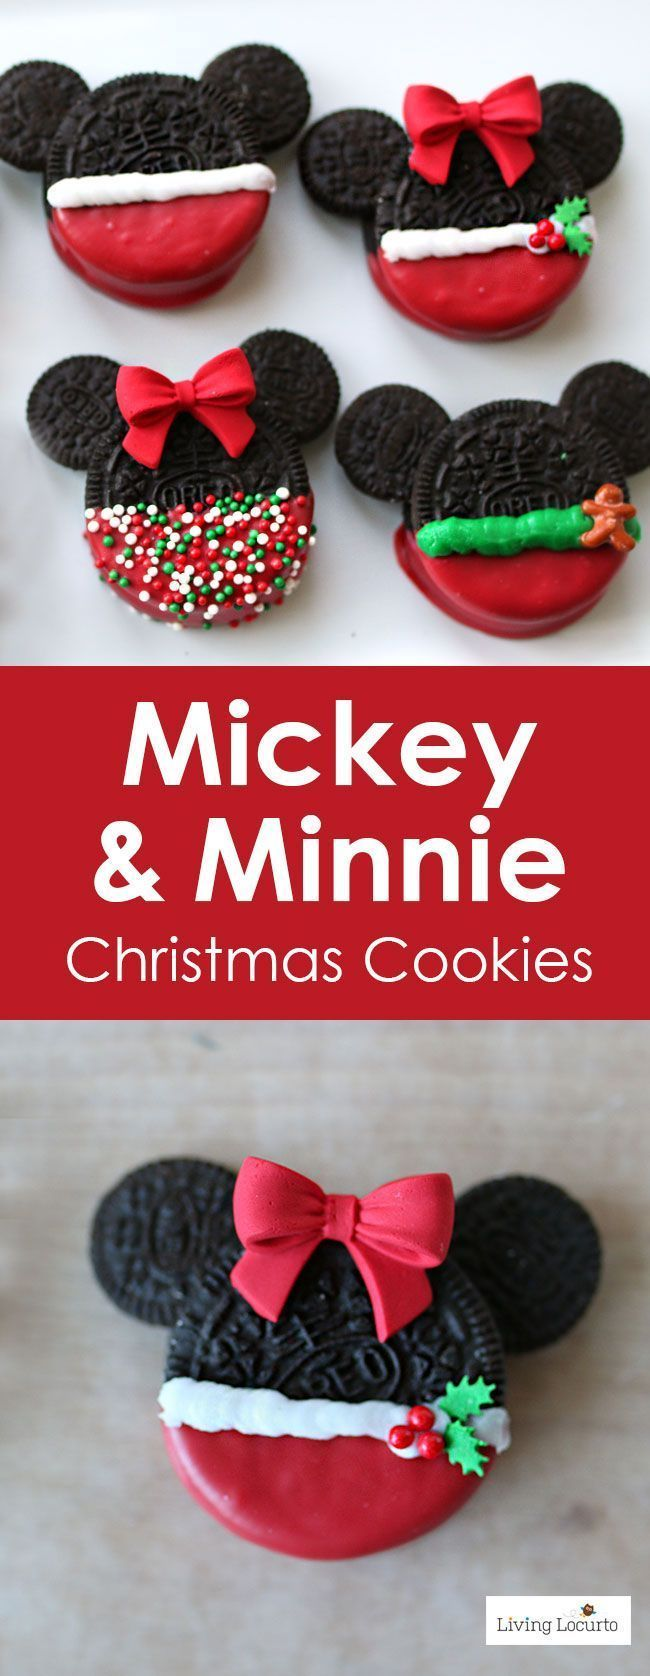 adorable mickey minnie mouse christmas cookies simple no bake oreo cookie idea for the holidays perfect for gift giving or a party treat